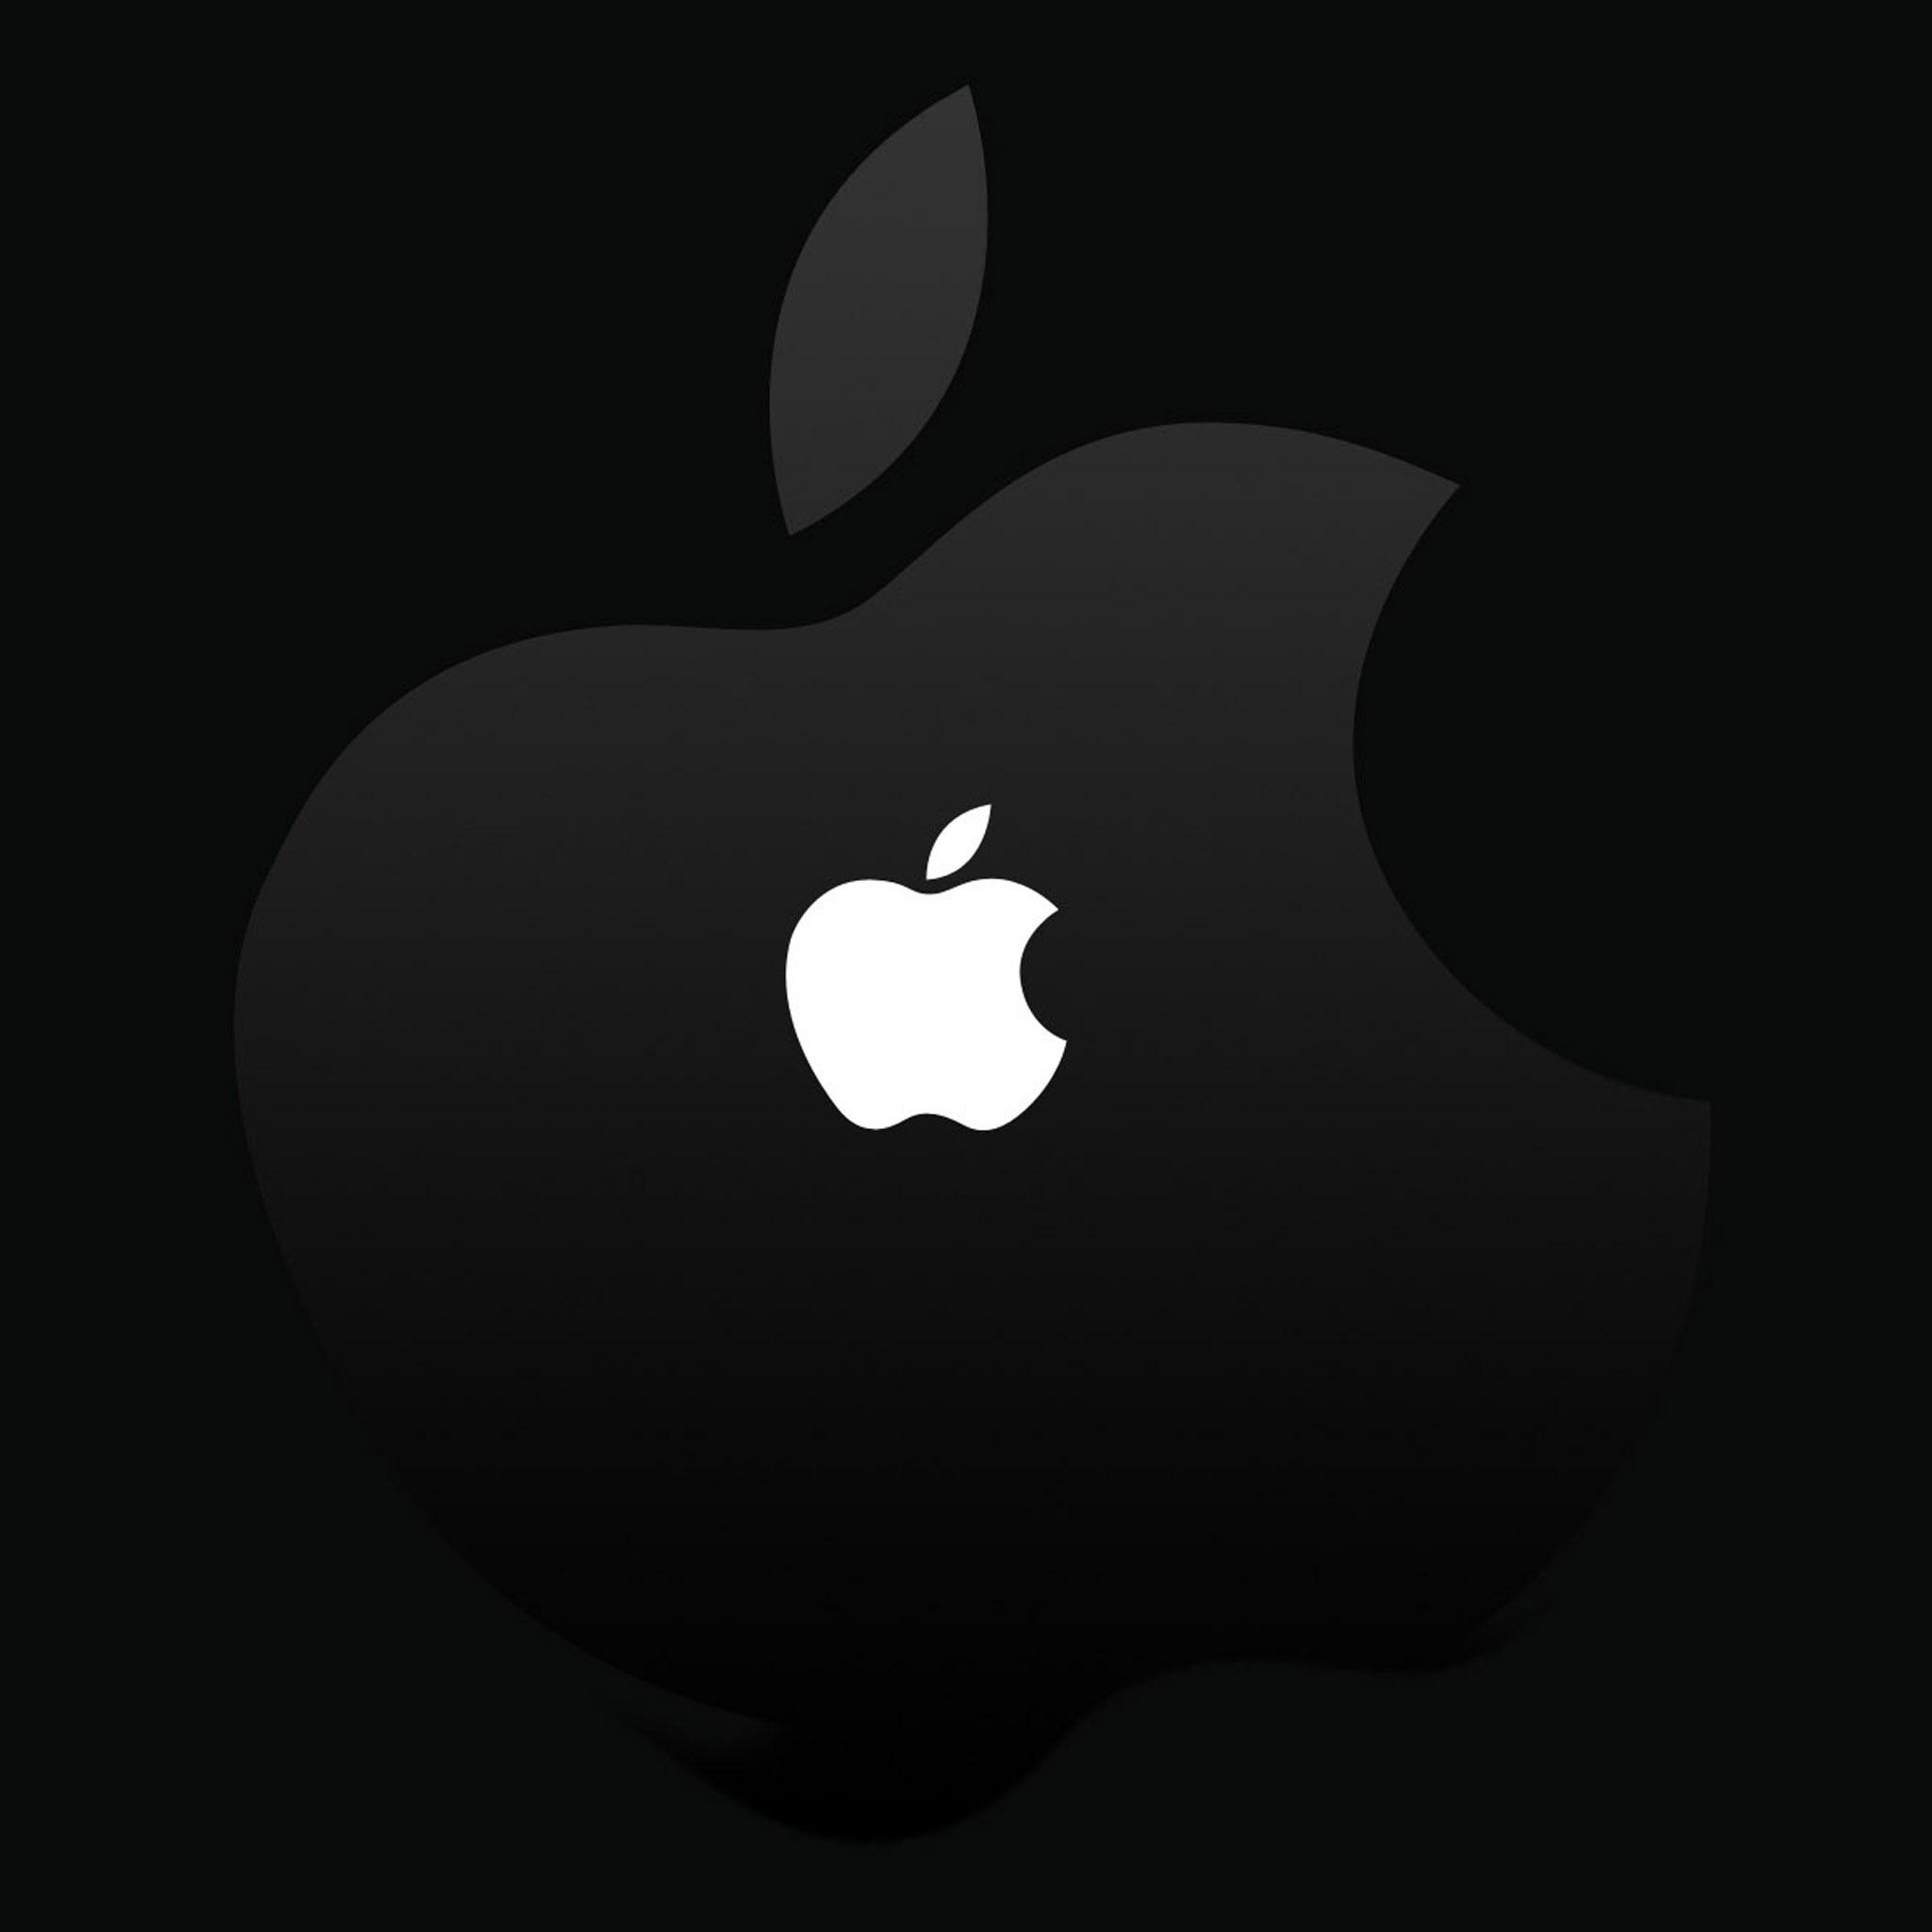 wallpaper.wiki-black-wallpaper-apple-hd-pic-wpc0012037 | wallpaper.wiki